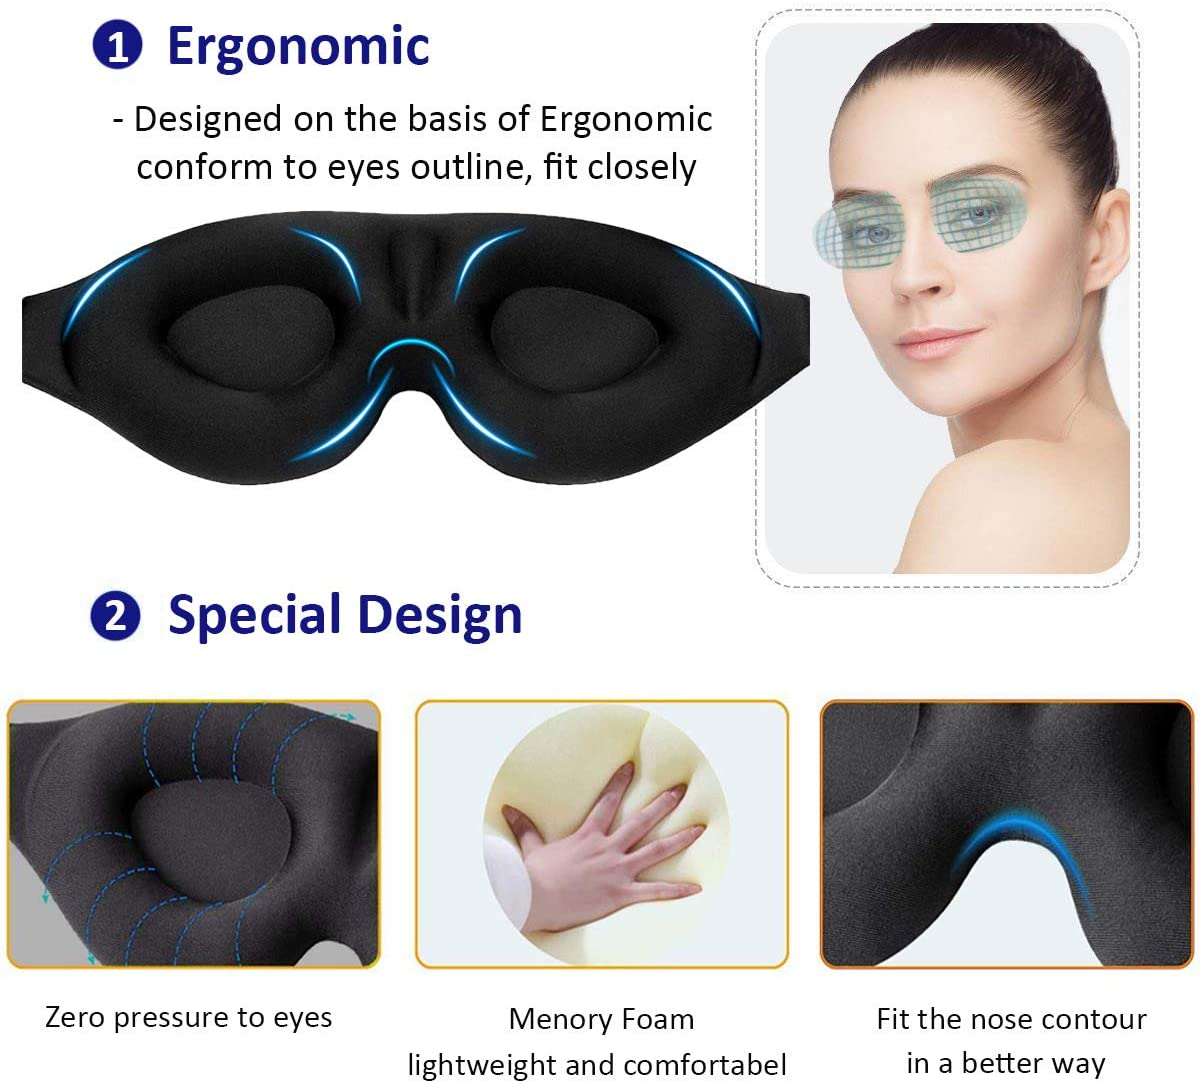 MZOO Sleep Eye Mask for Men Women, 3D Contoured Cup Sleeping Mask & Blindfold, Concave Molded Night Sleep Mask, Block Out Light, Soft Comfort Eye Shade Cover for Travel Yoga Nap, Black: Health & Personal Care